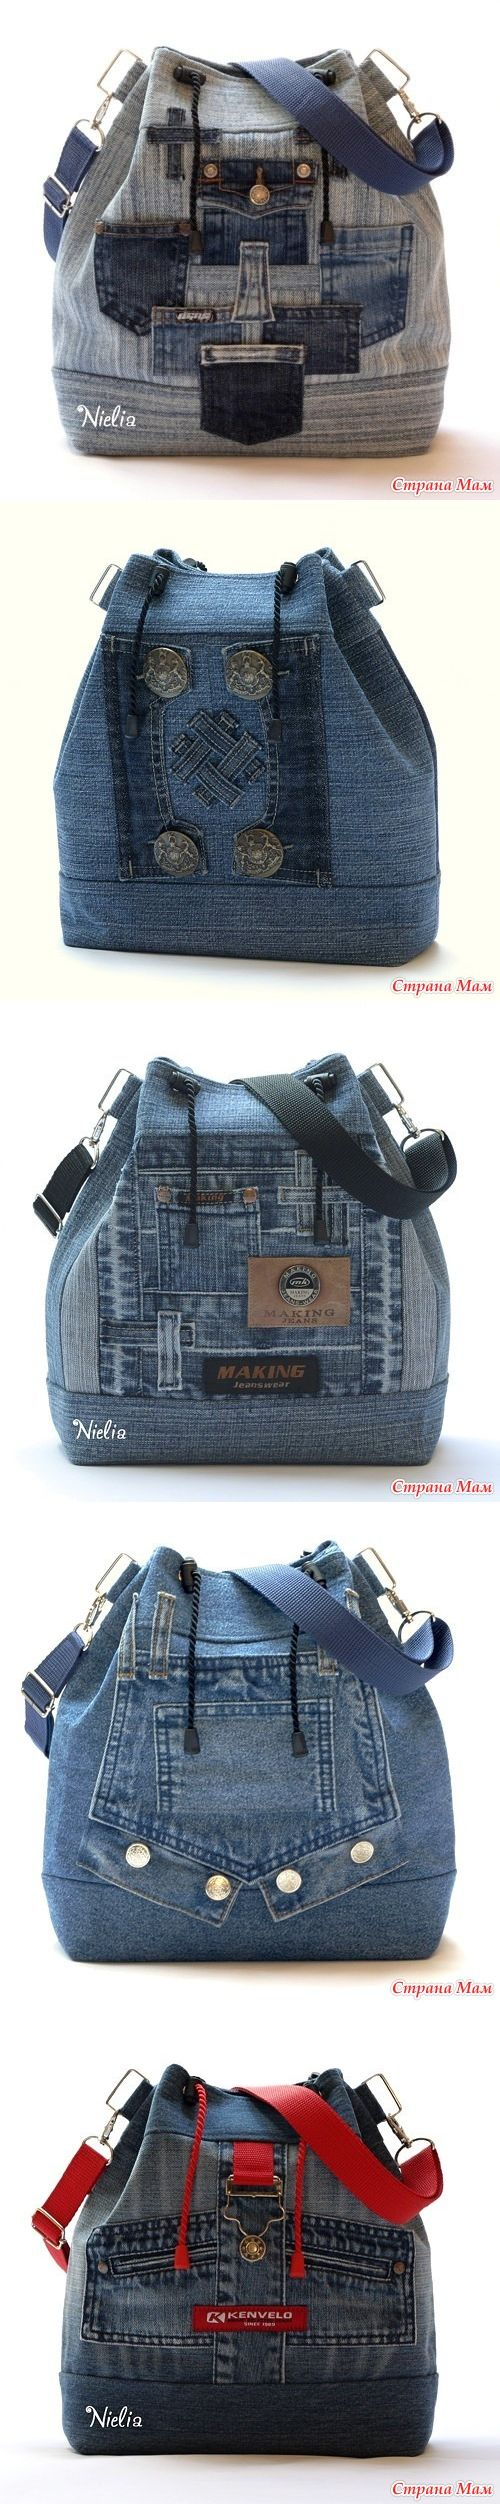 Denim Handbags...♥ Deniz ♥